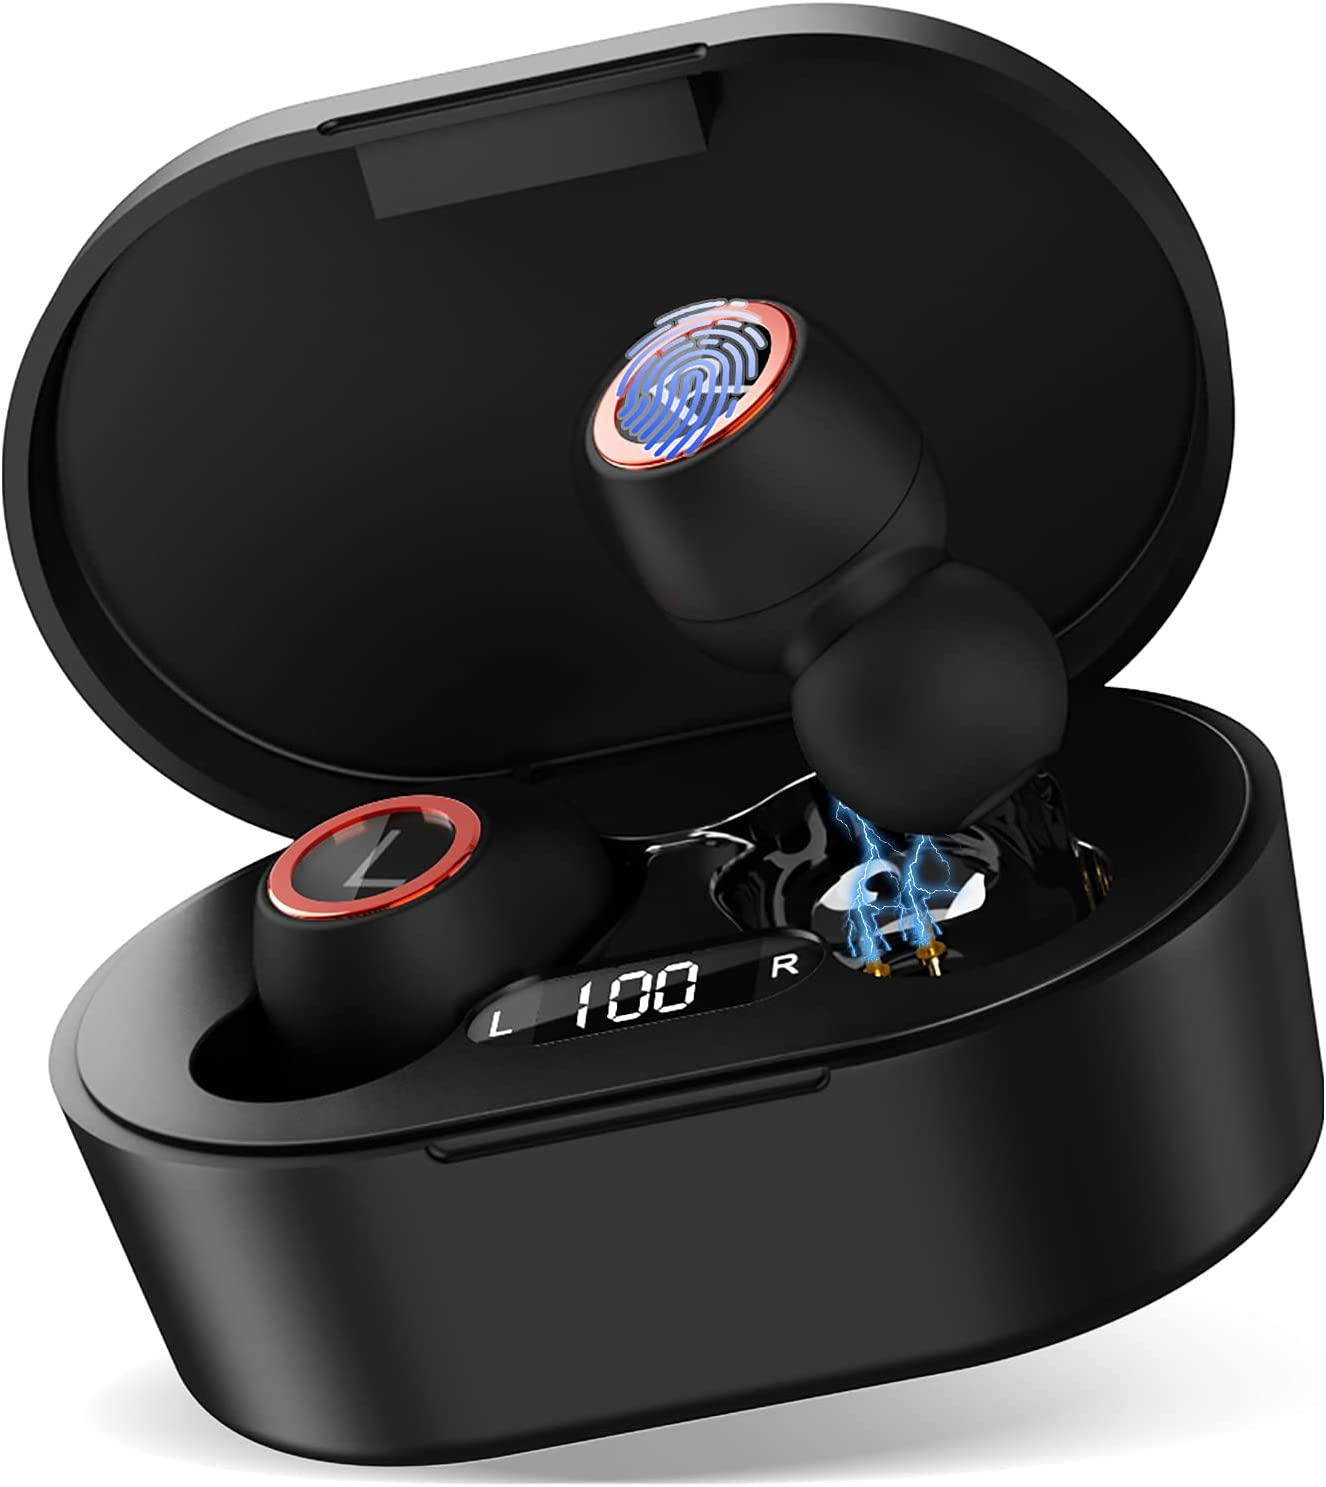 Regular store UX923 Wireless Earbuds SEAL limited product Bluetooth 5.0 So Sport Headphones Premium